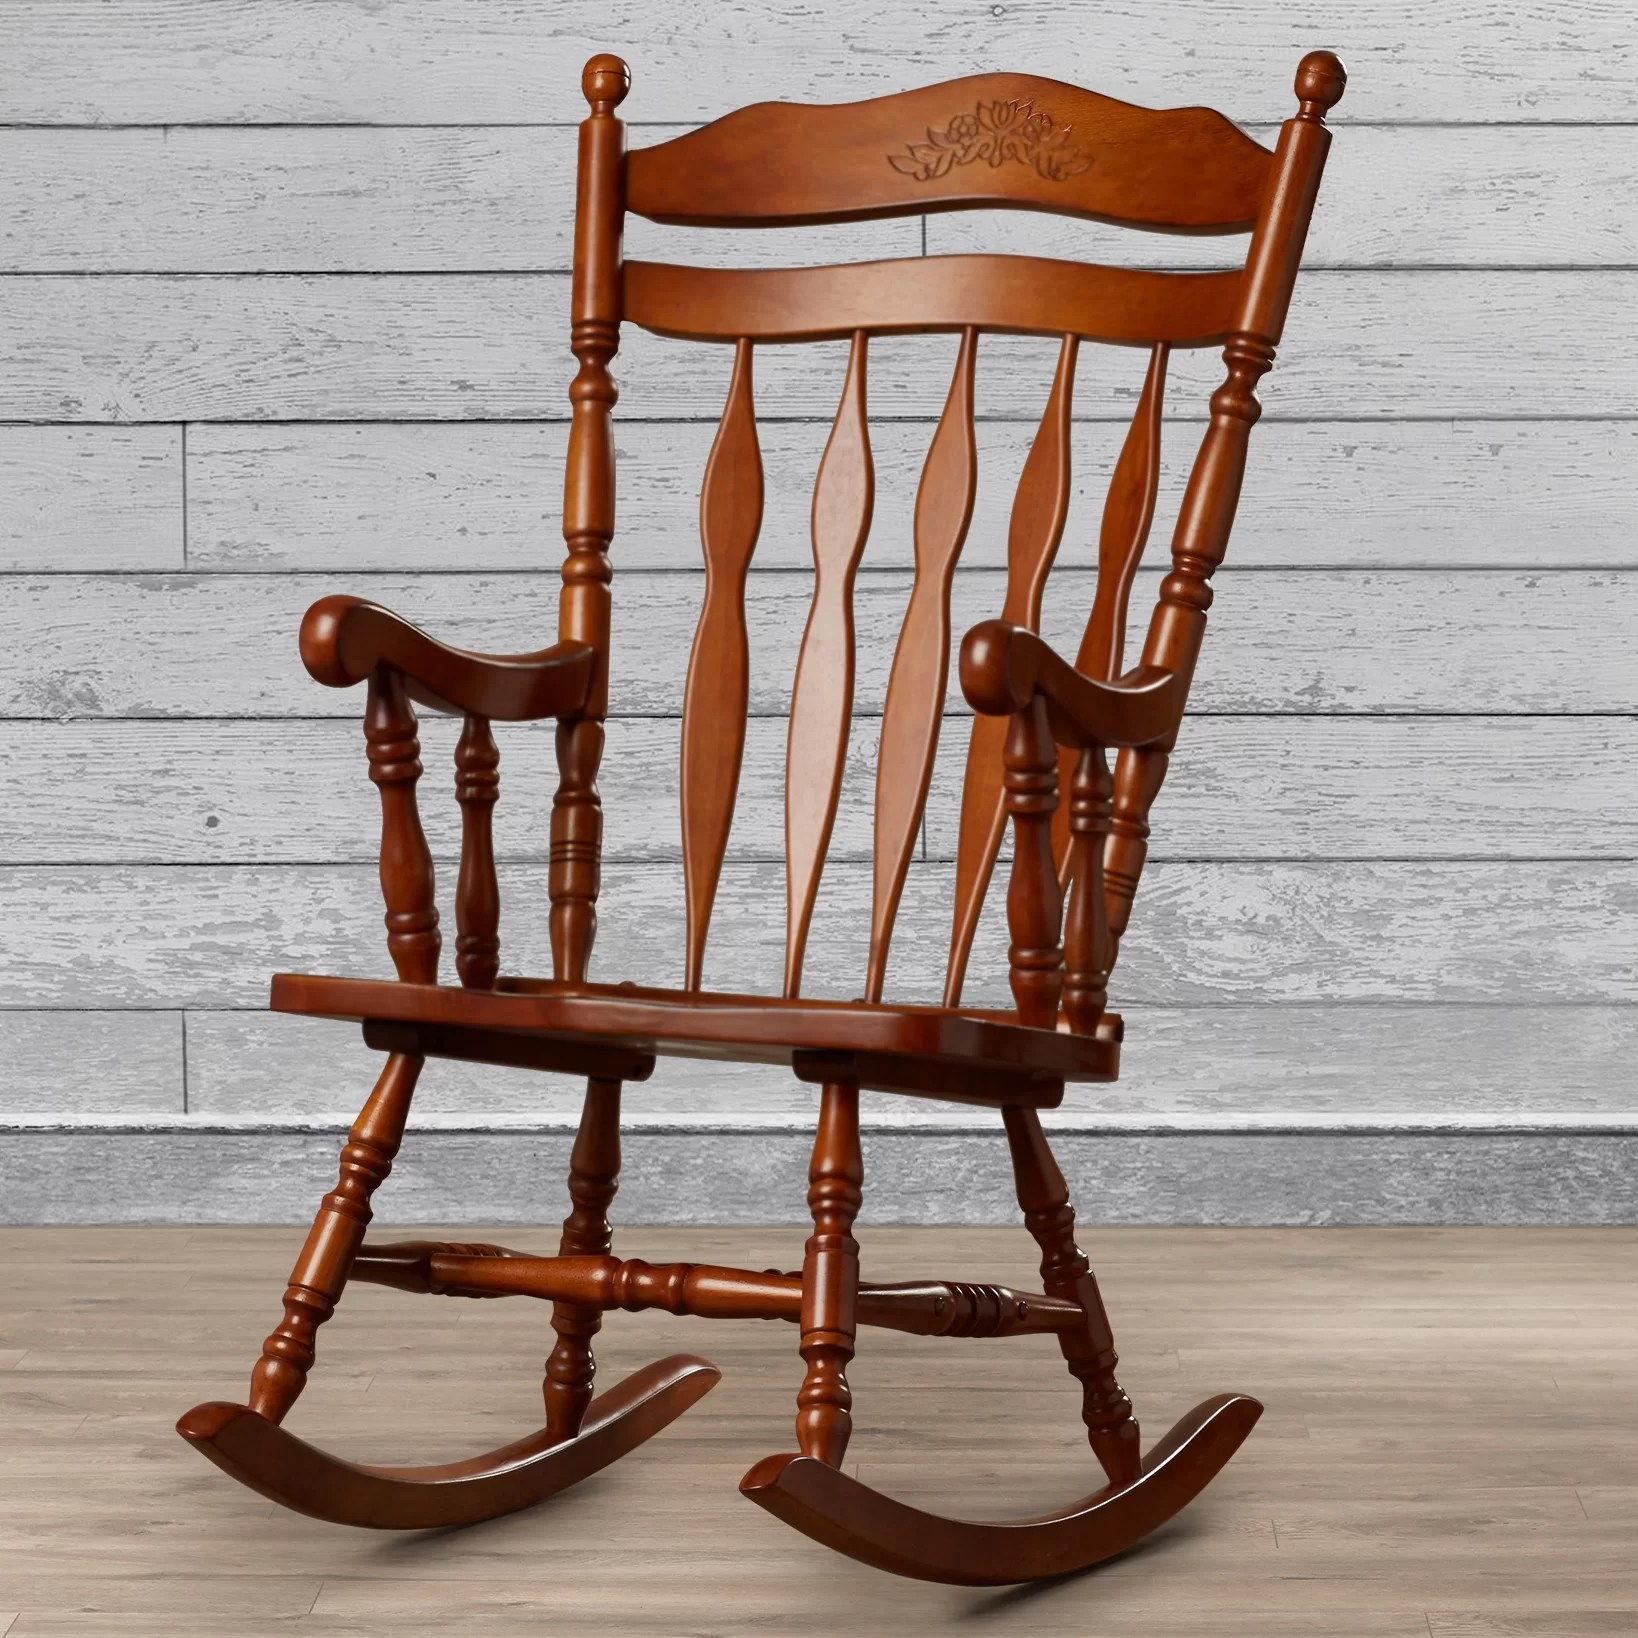 Best Place To Buy Rocking Chairs Greenwood Rocking Chair